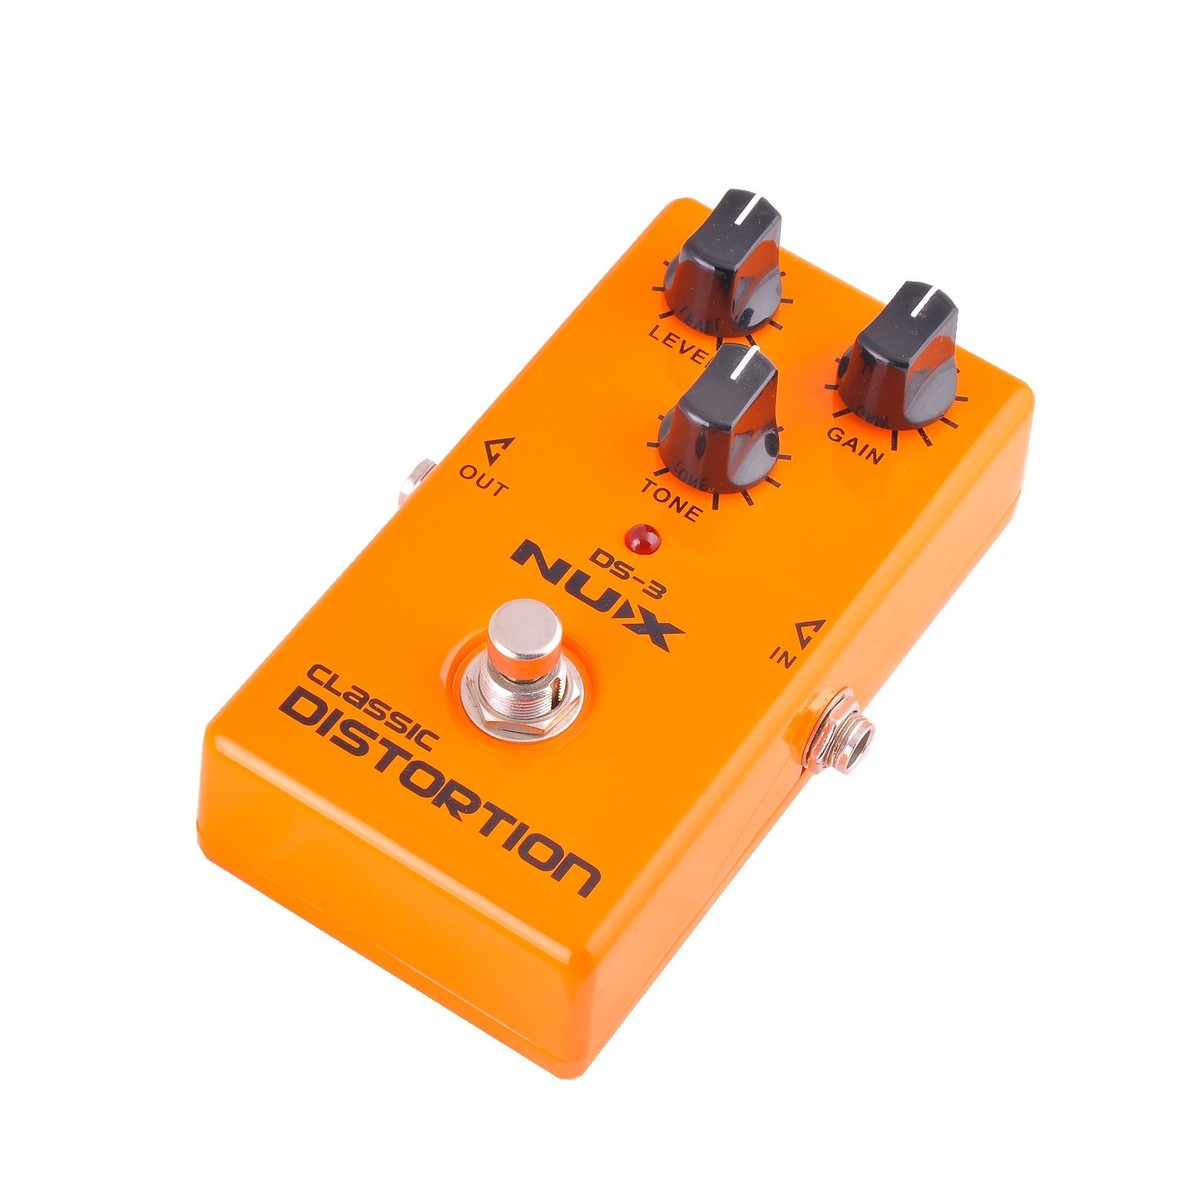 nux ds 3 distortion guitar effects pedal at. Black Bedroom Furniture Sets. Home Design Ideas